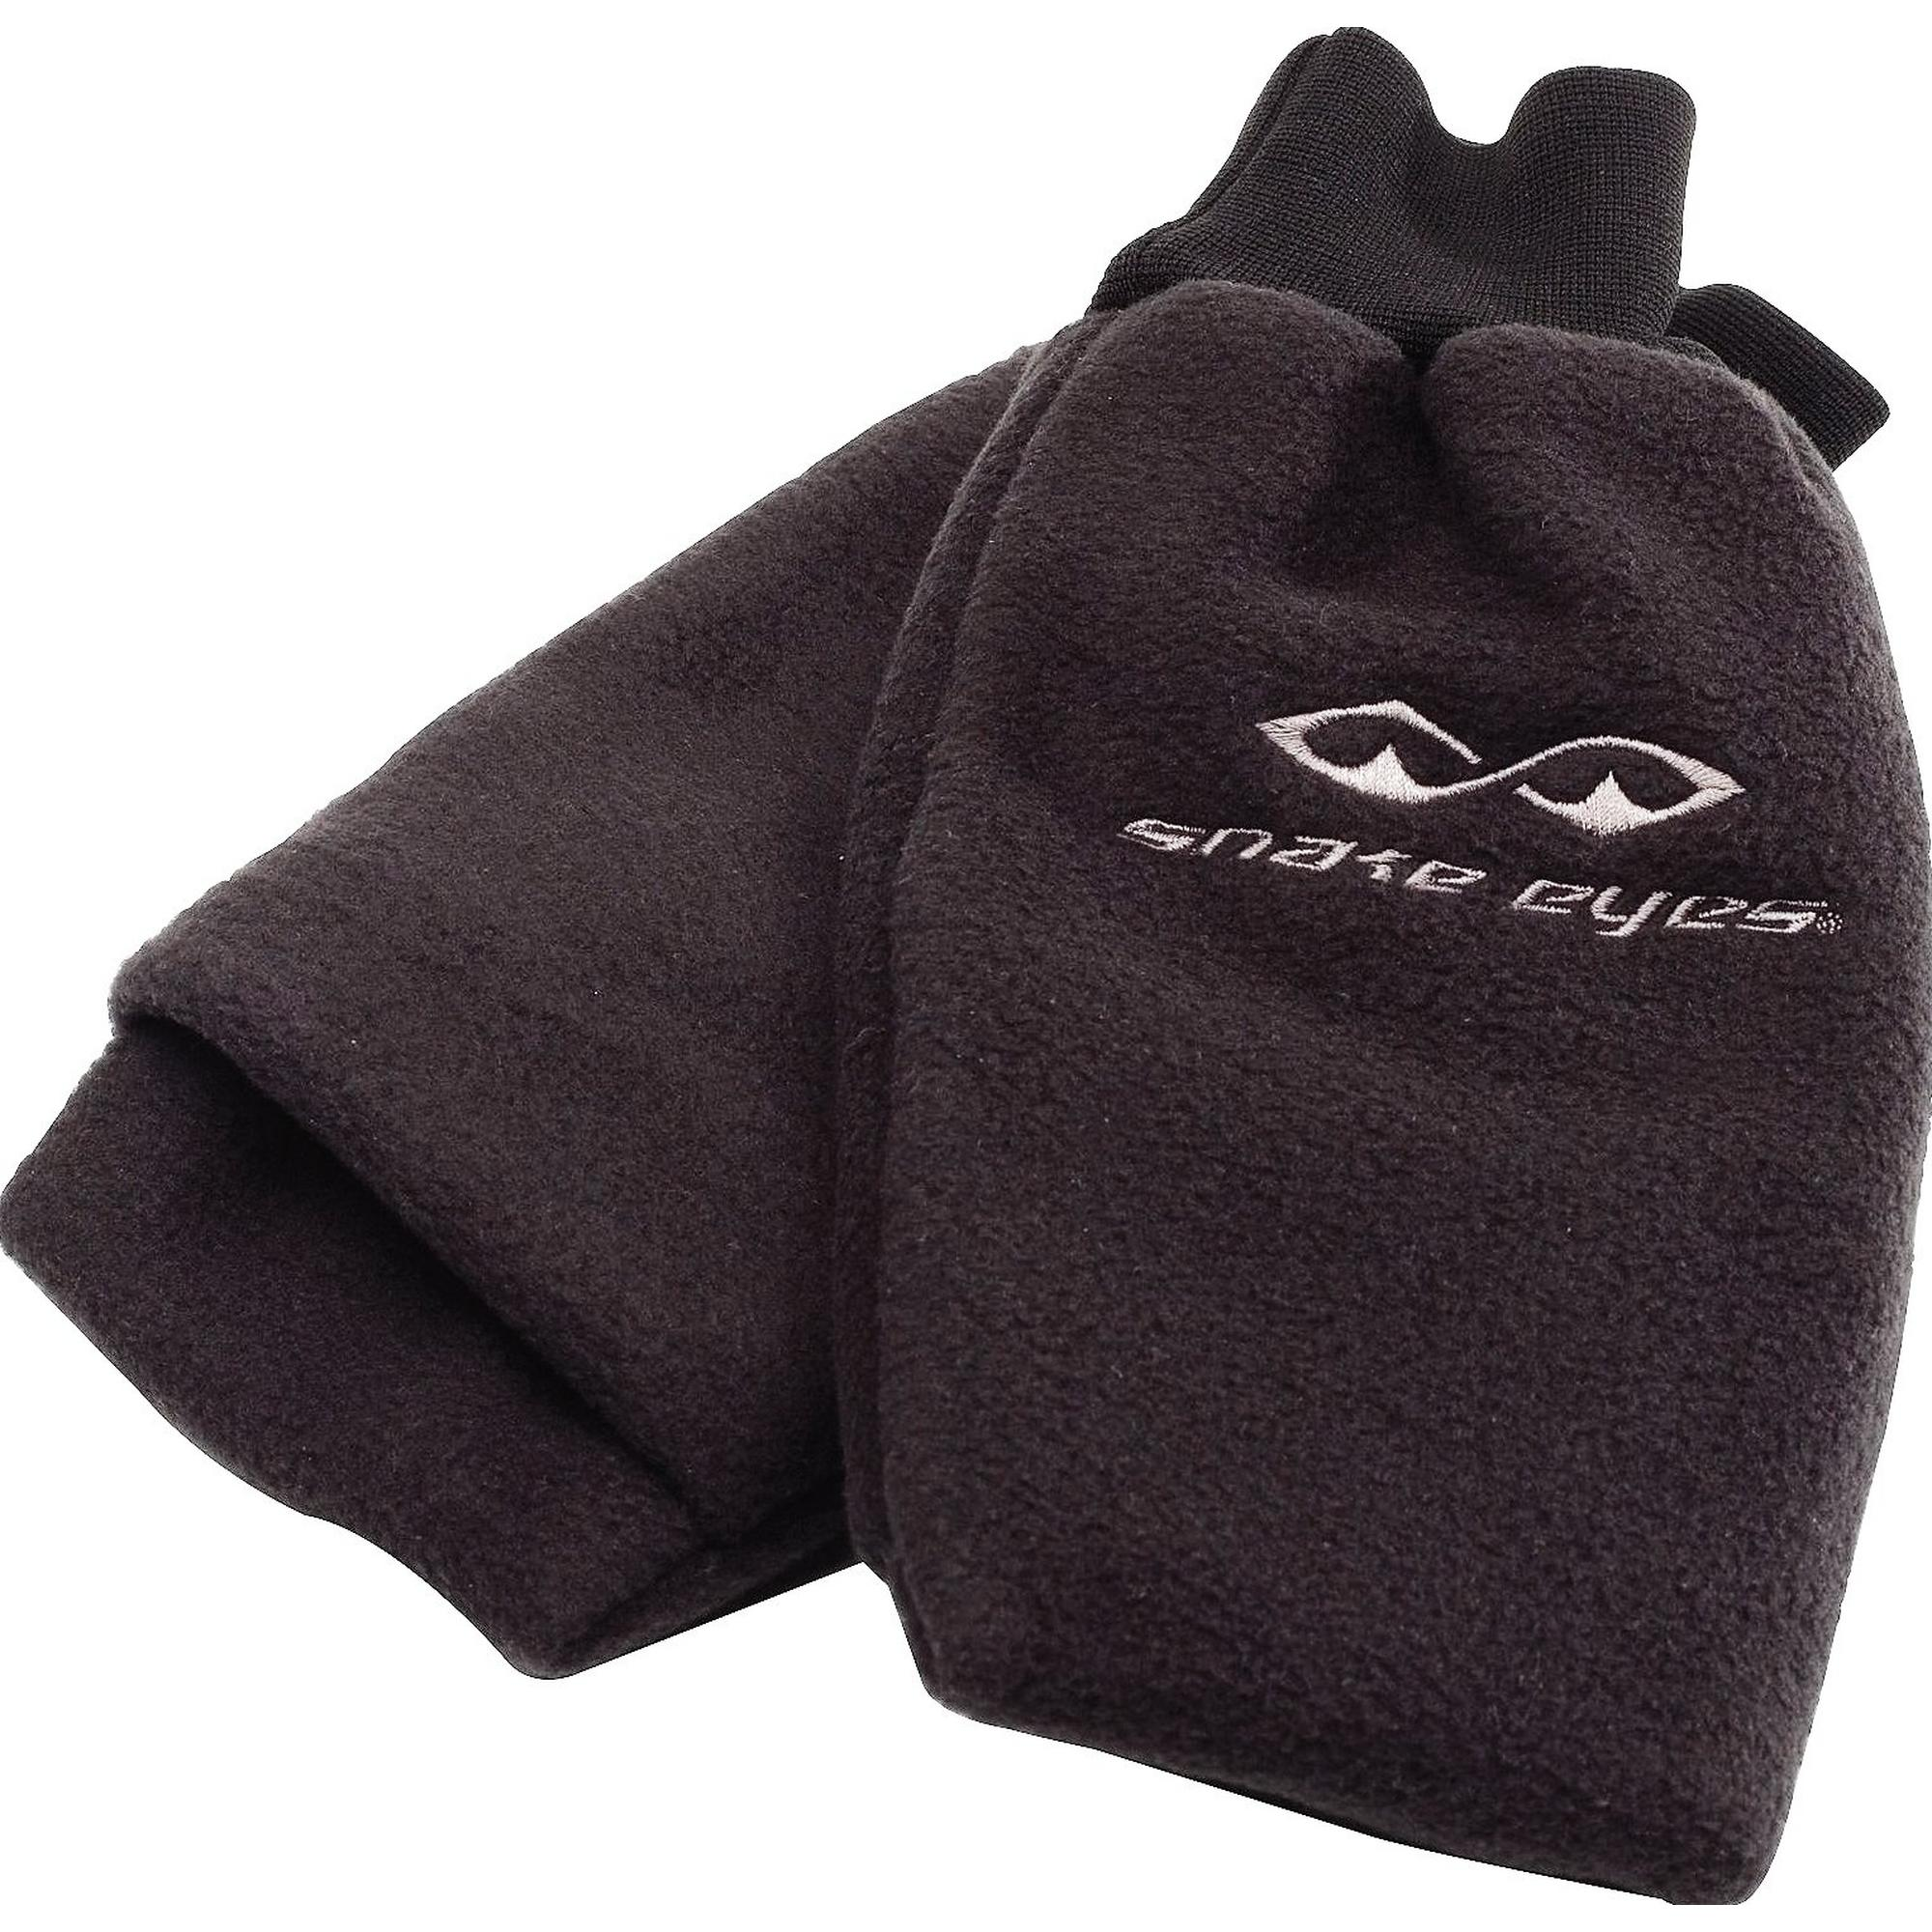 Cart Mitts